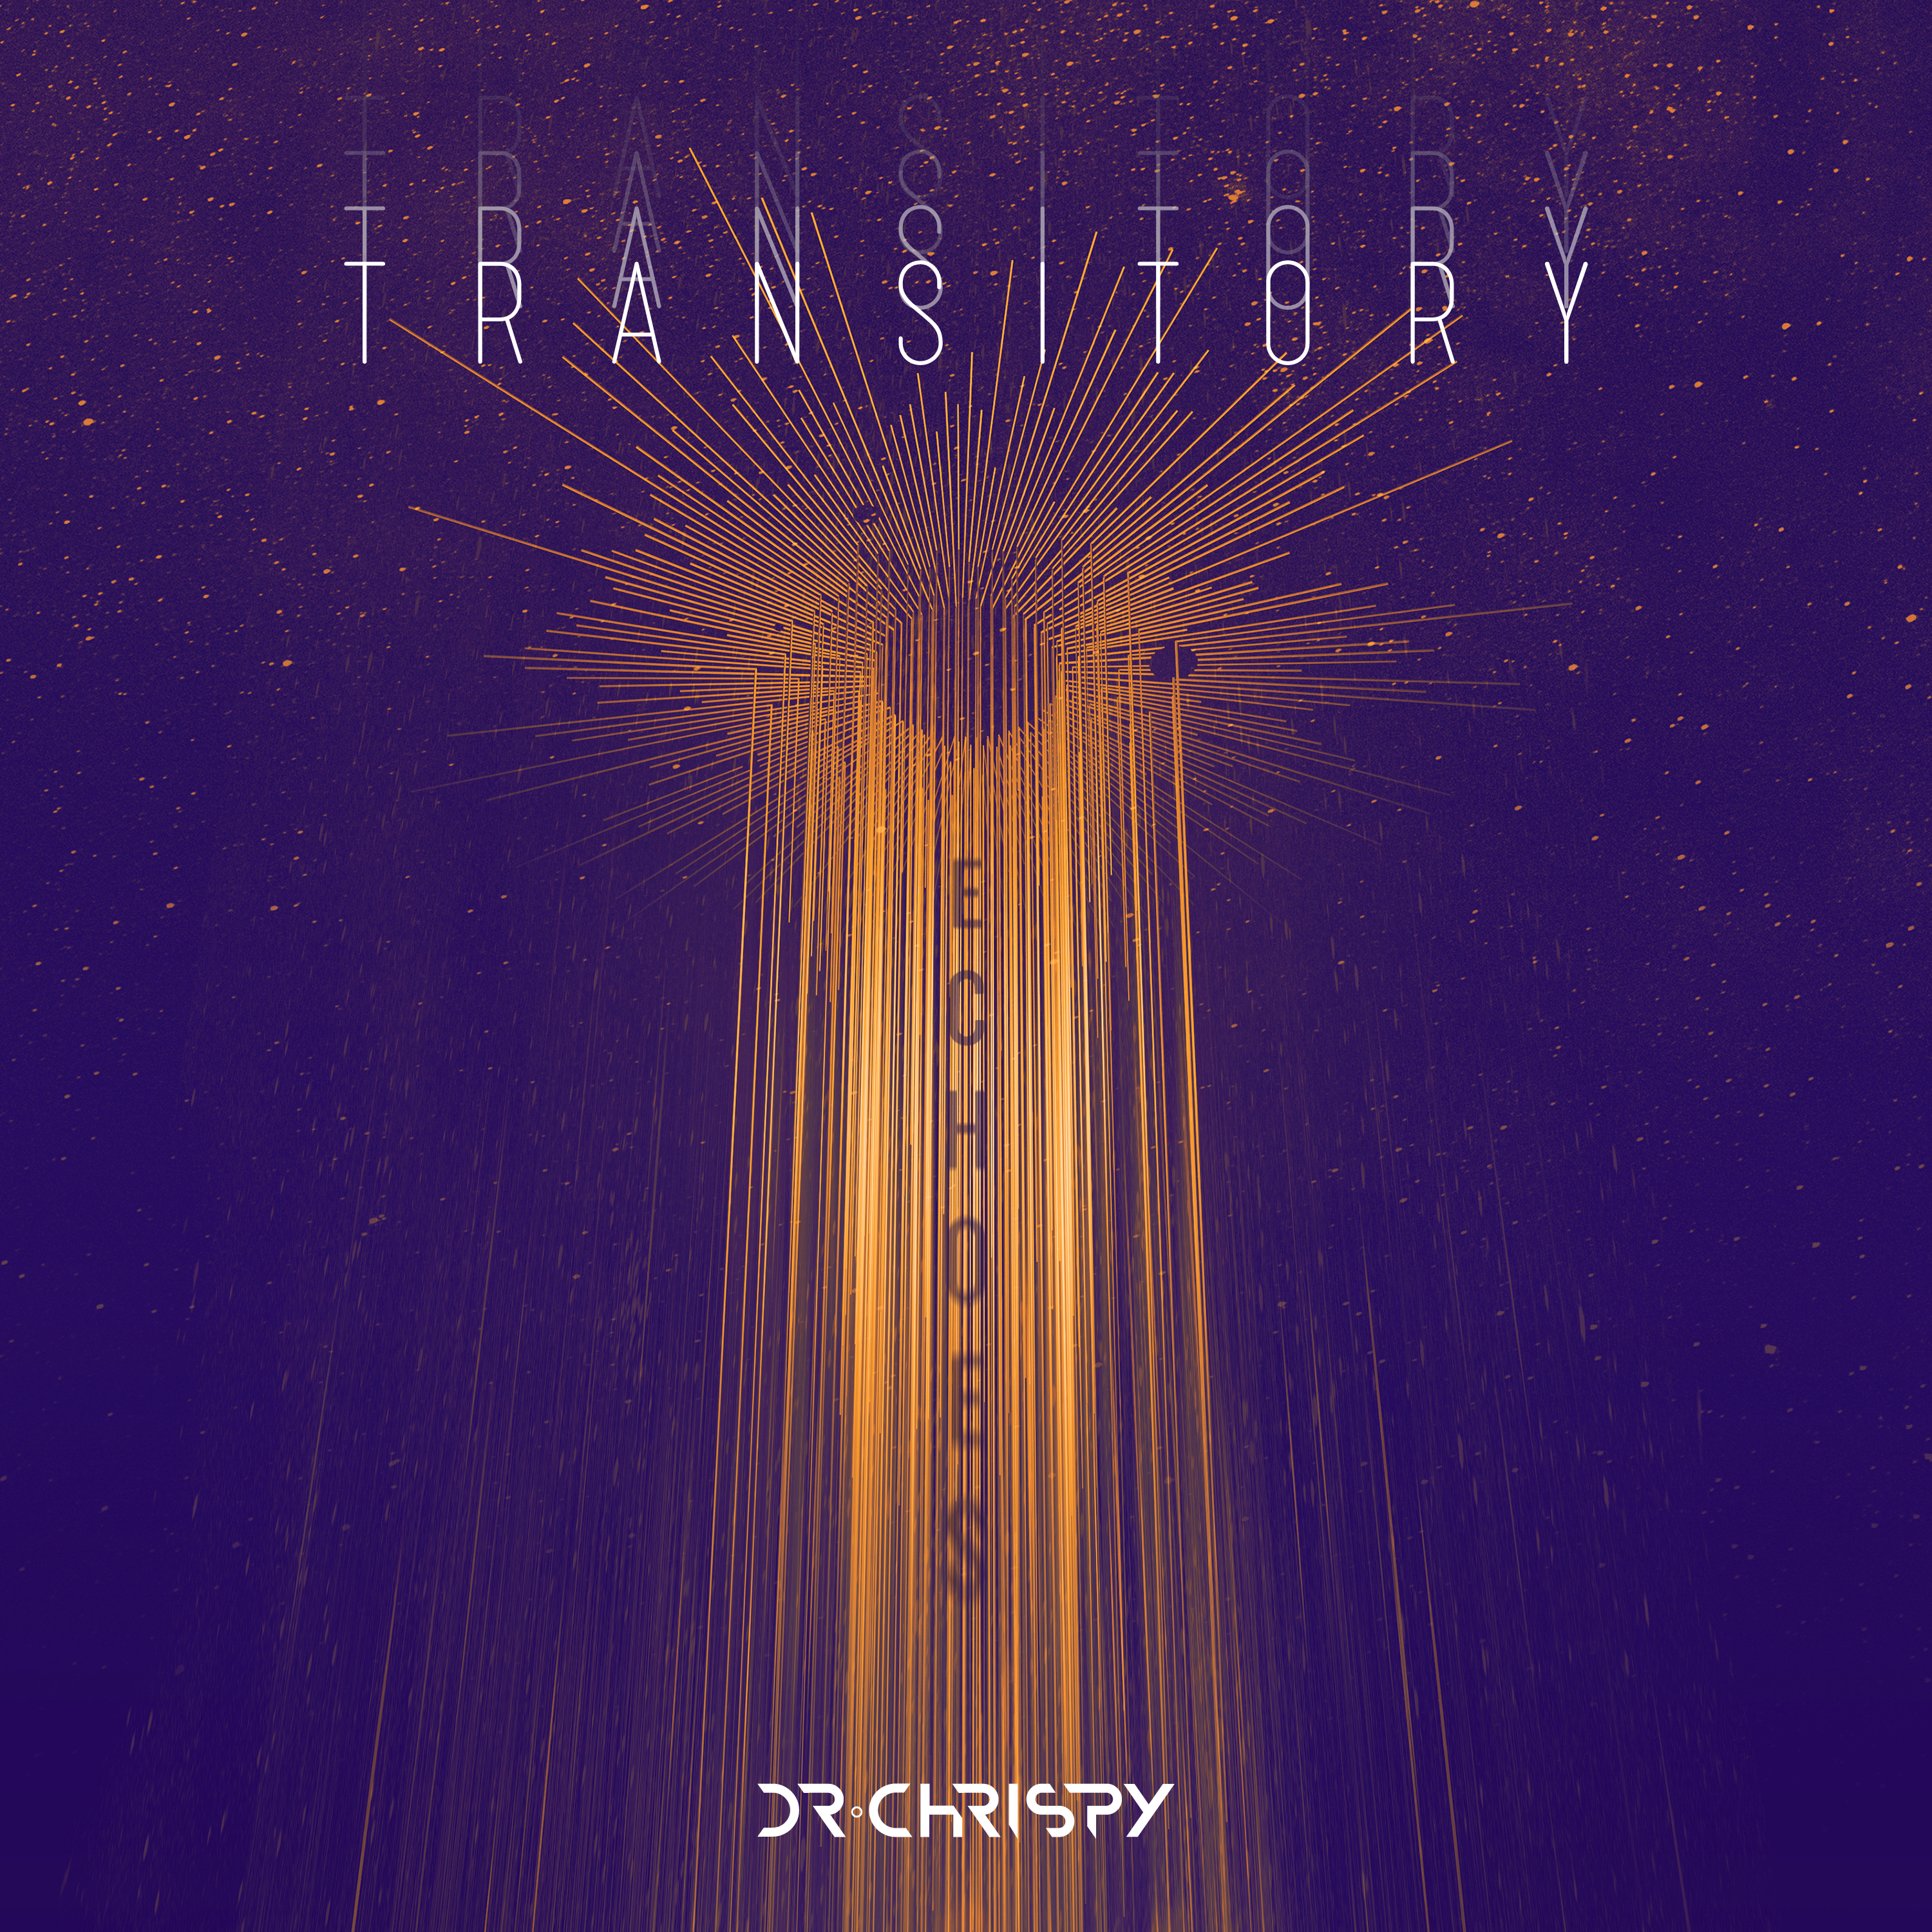 dr-chrispy-transitory-echoes-cover-final-1